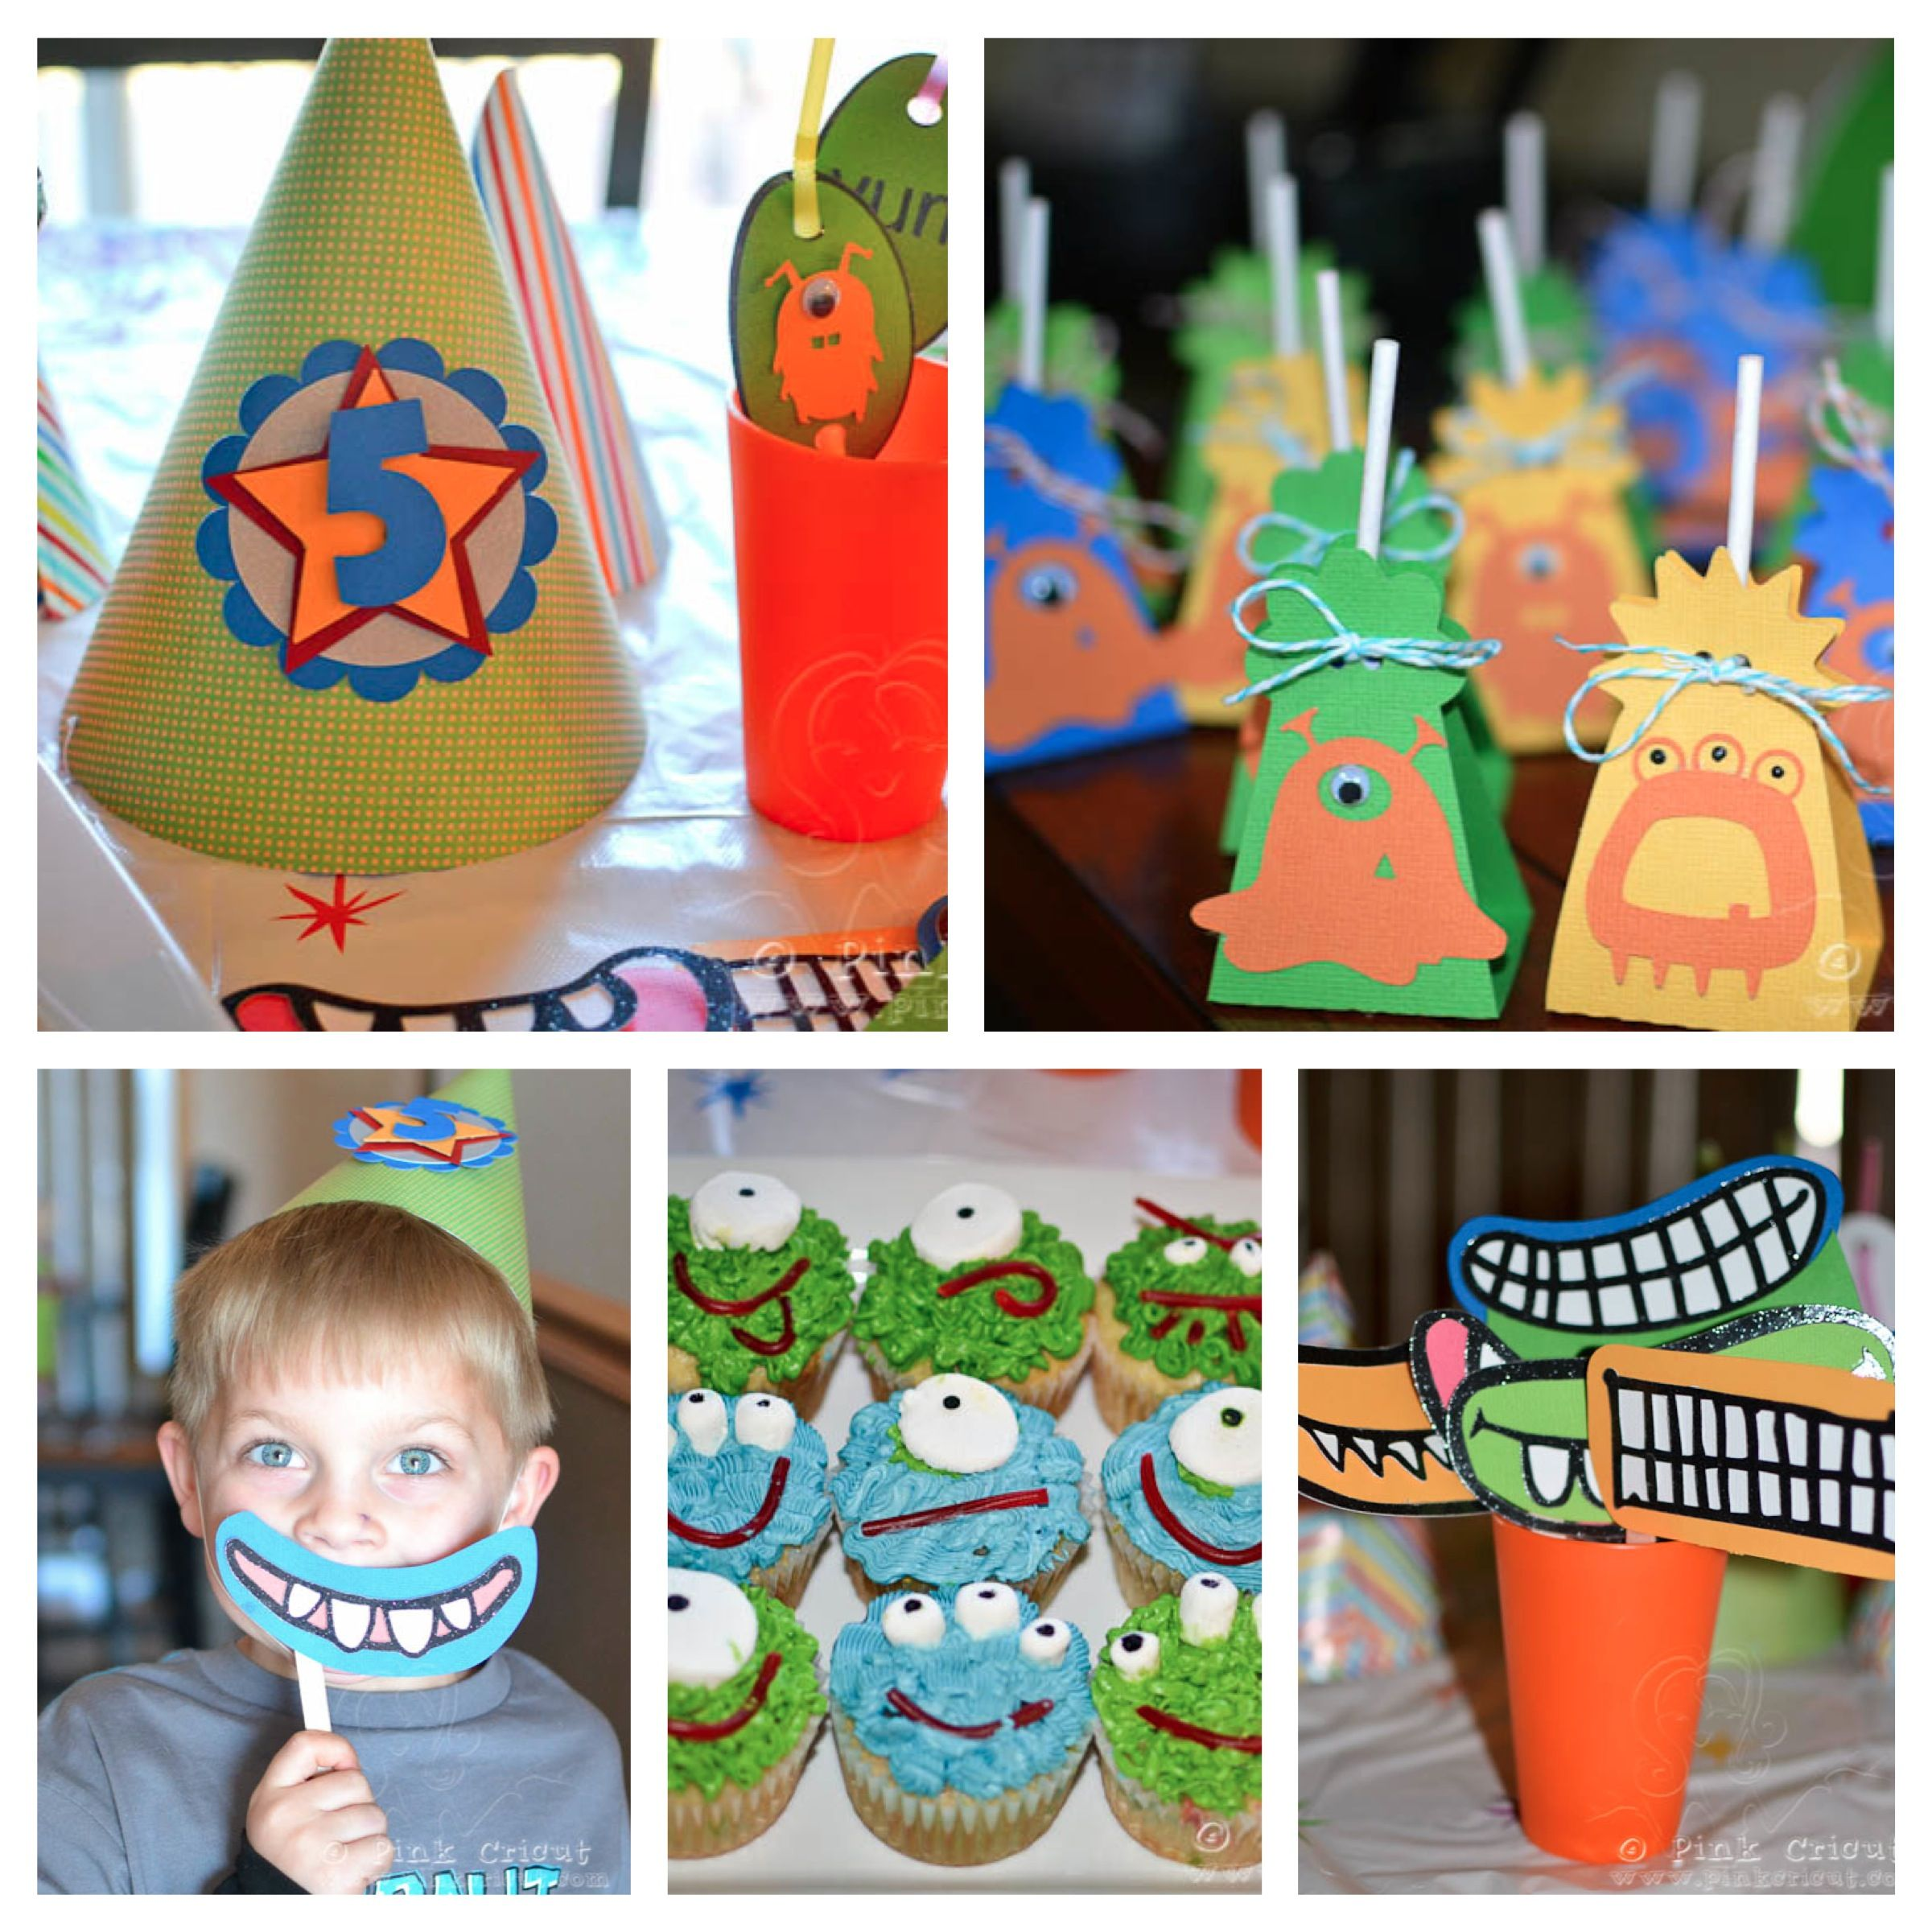 Good ideas for little my boy's 4th party